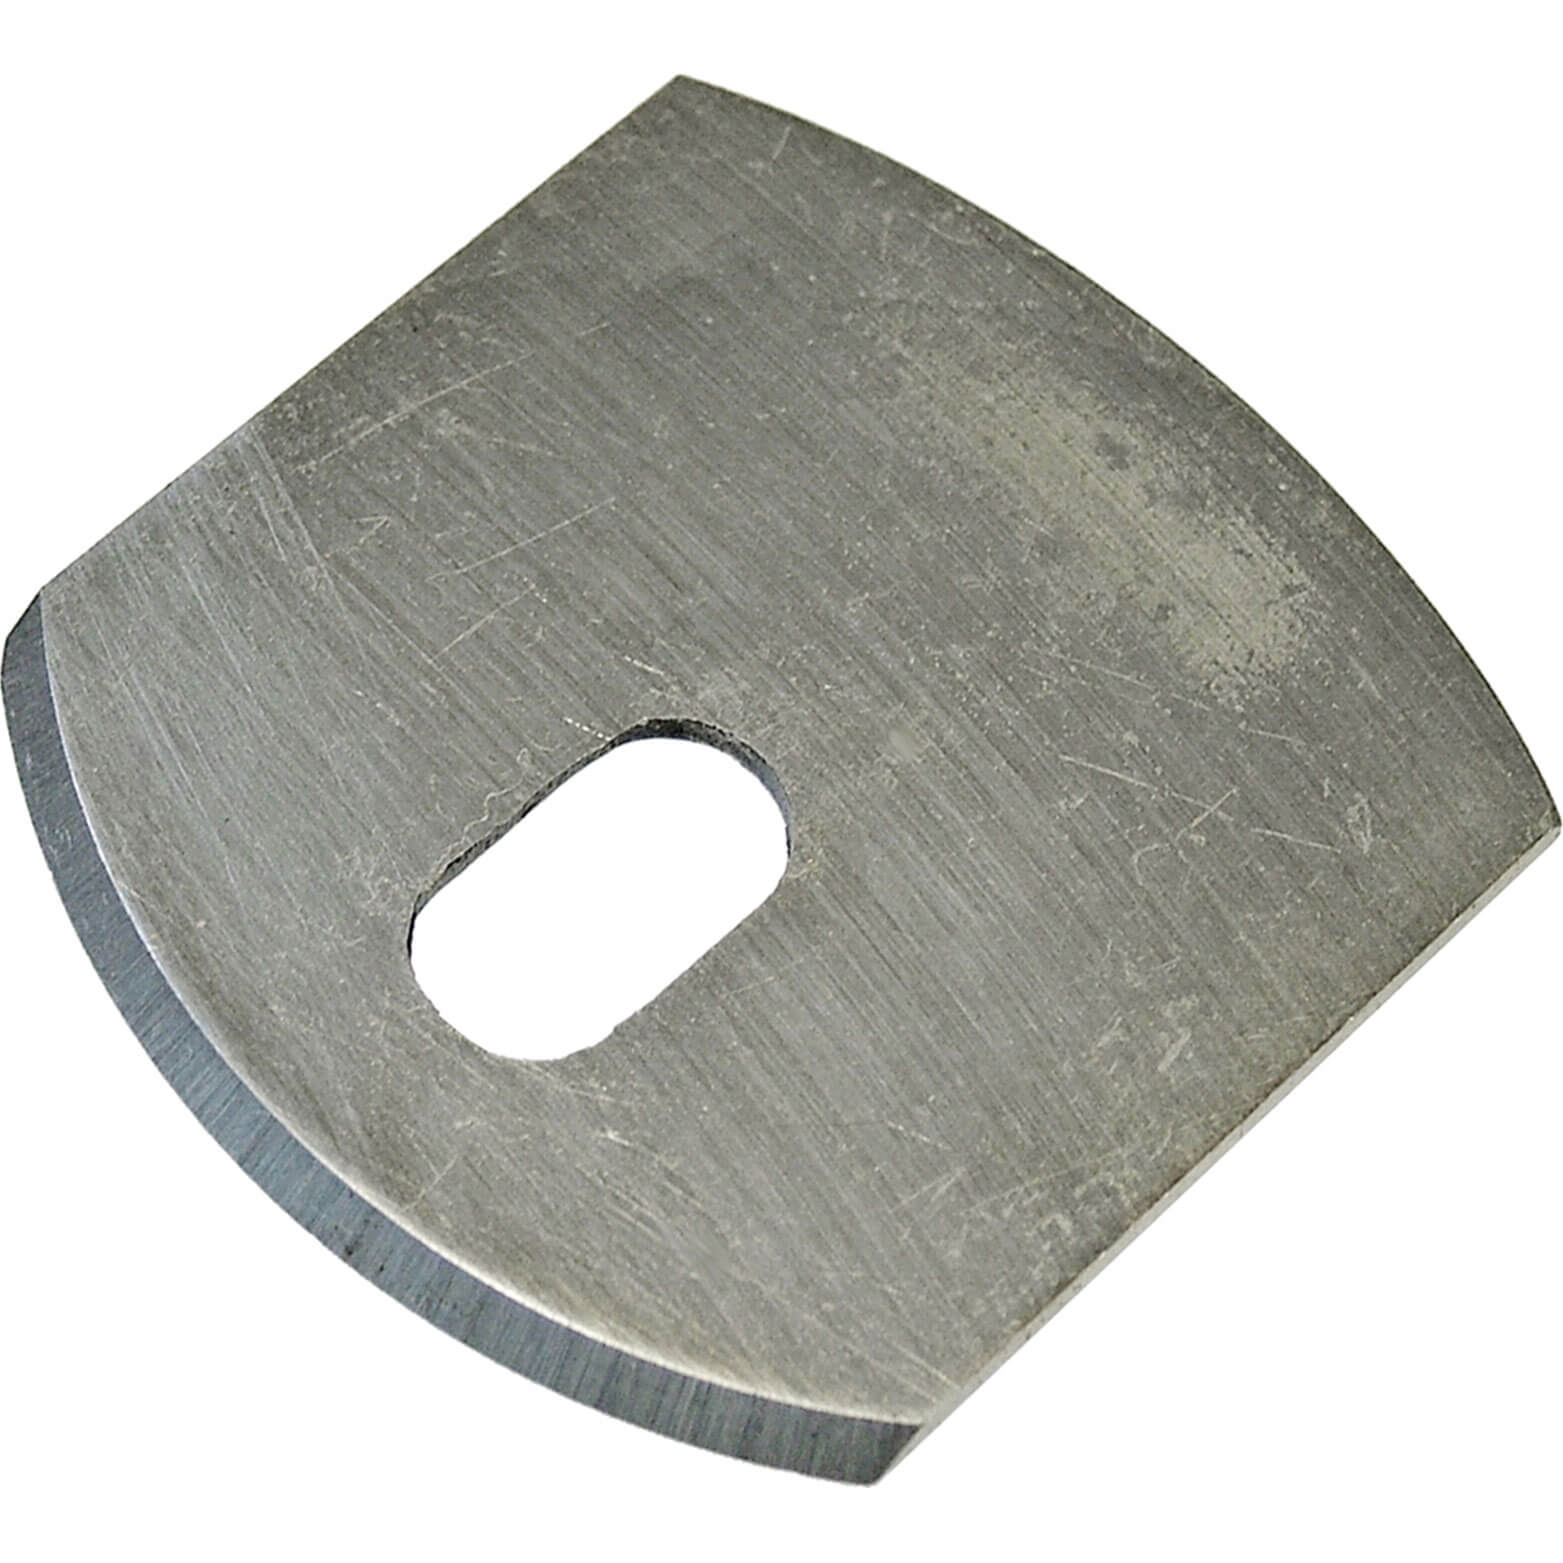 Click to view product details and reviews for Faithfull Convex Spokeshave Blade.